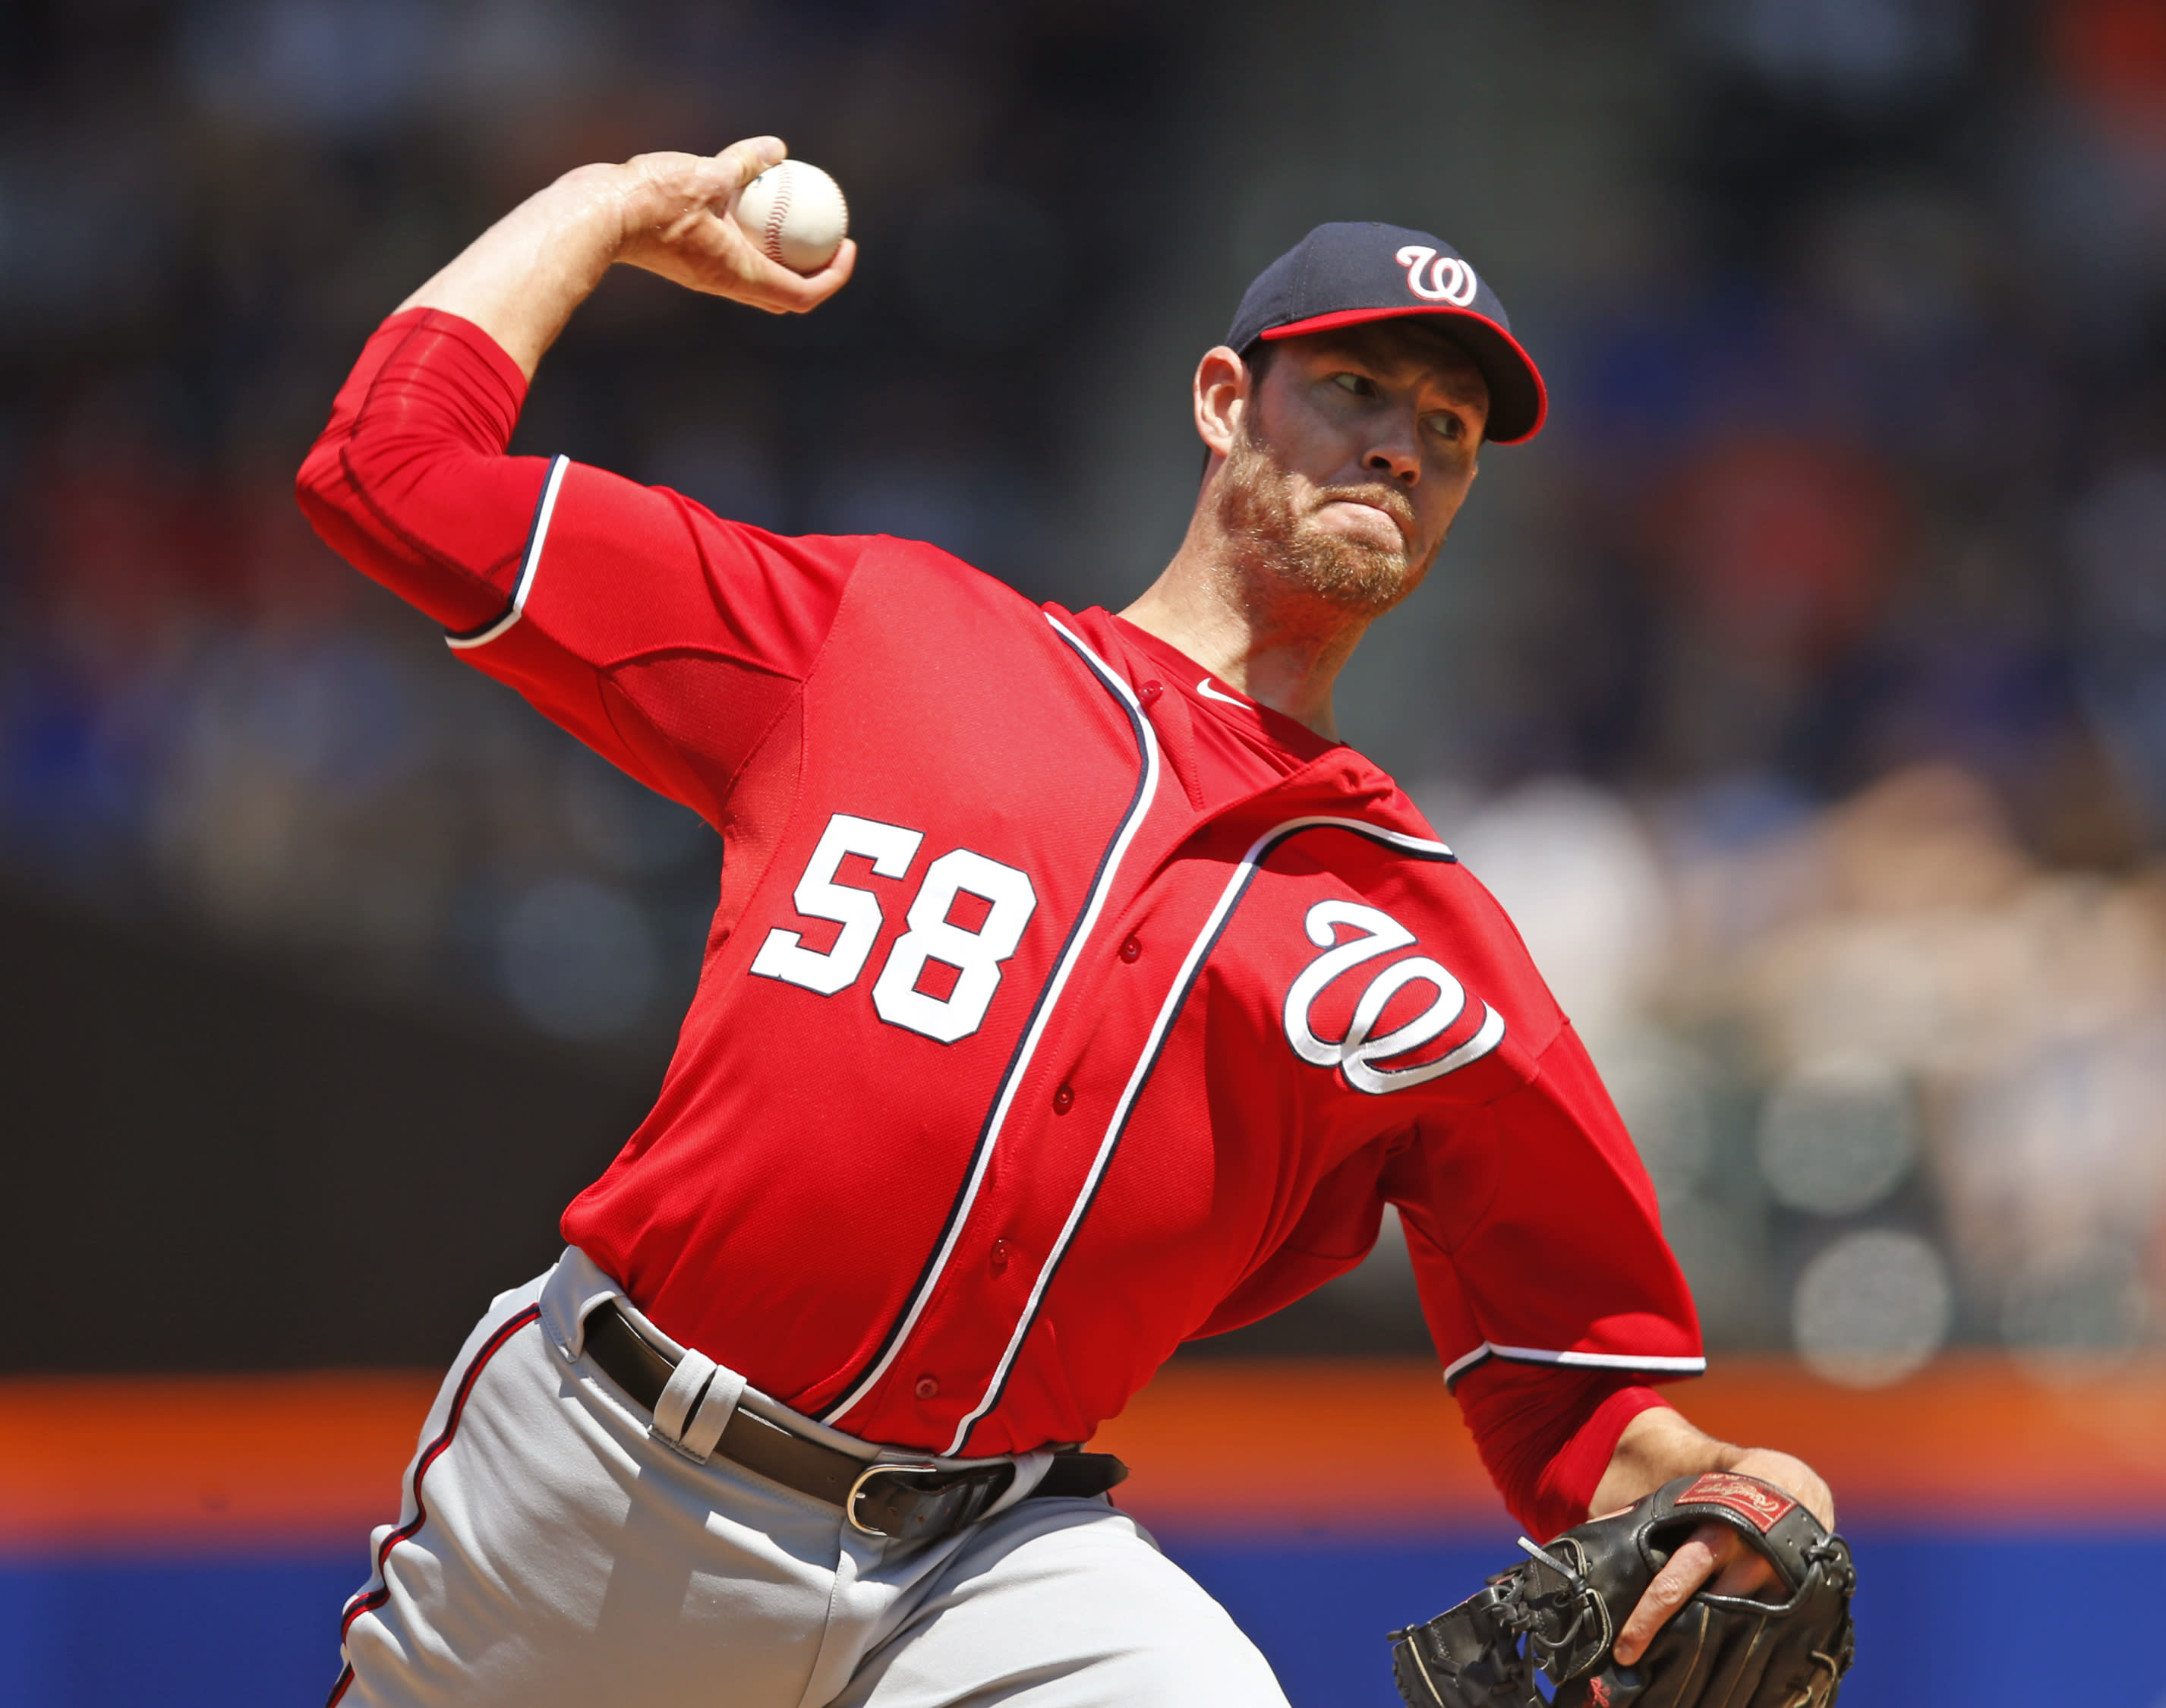 Fister pitches Nationals to 2nd straight 1-0 win over Mets